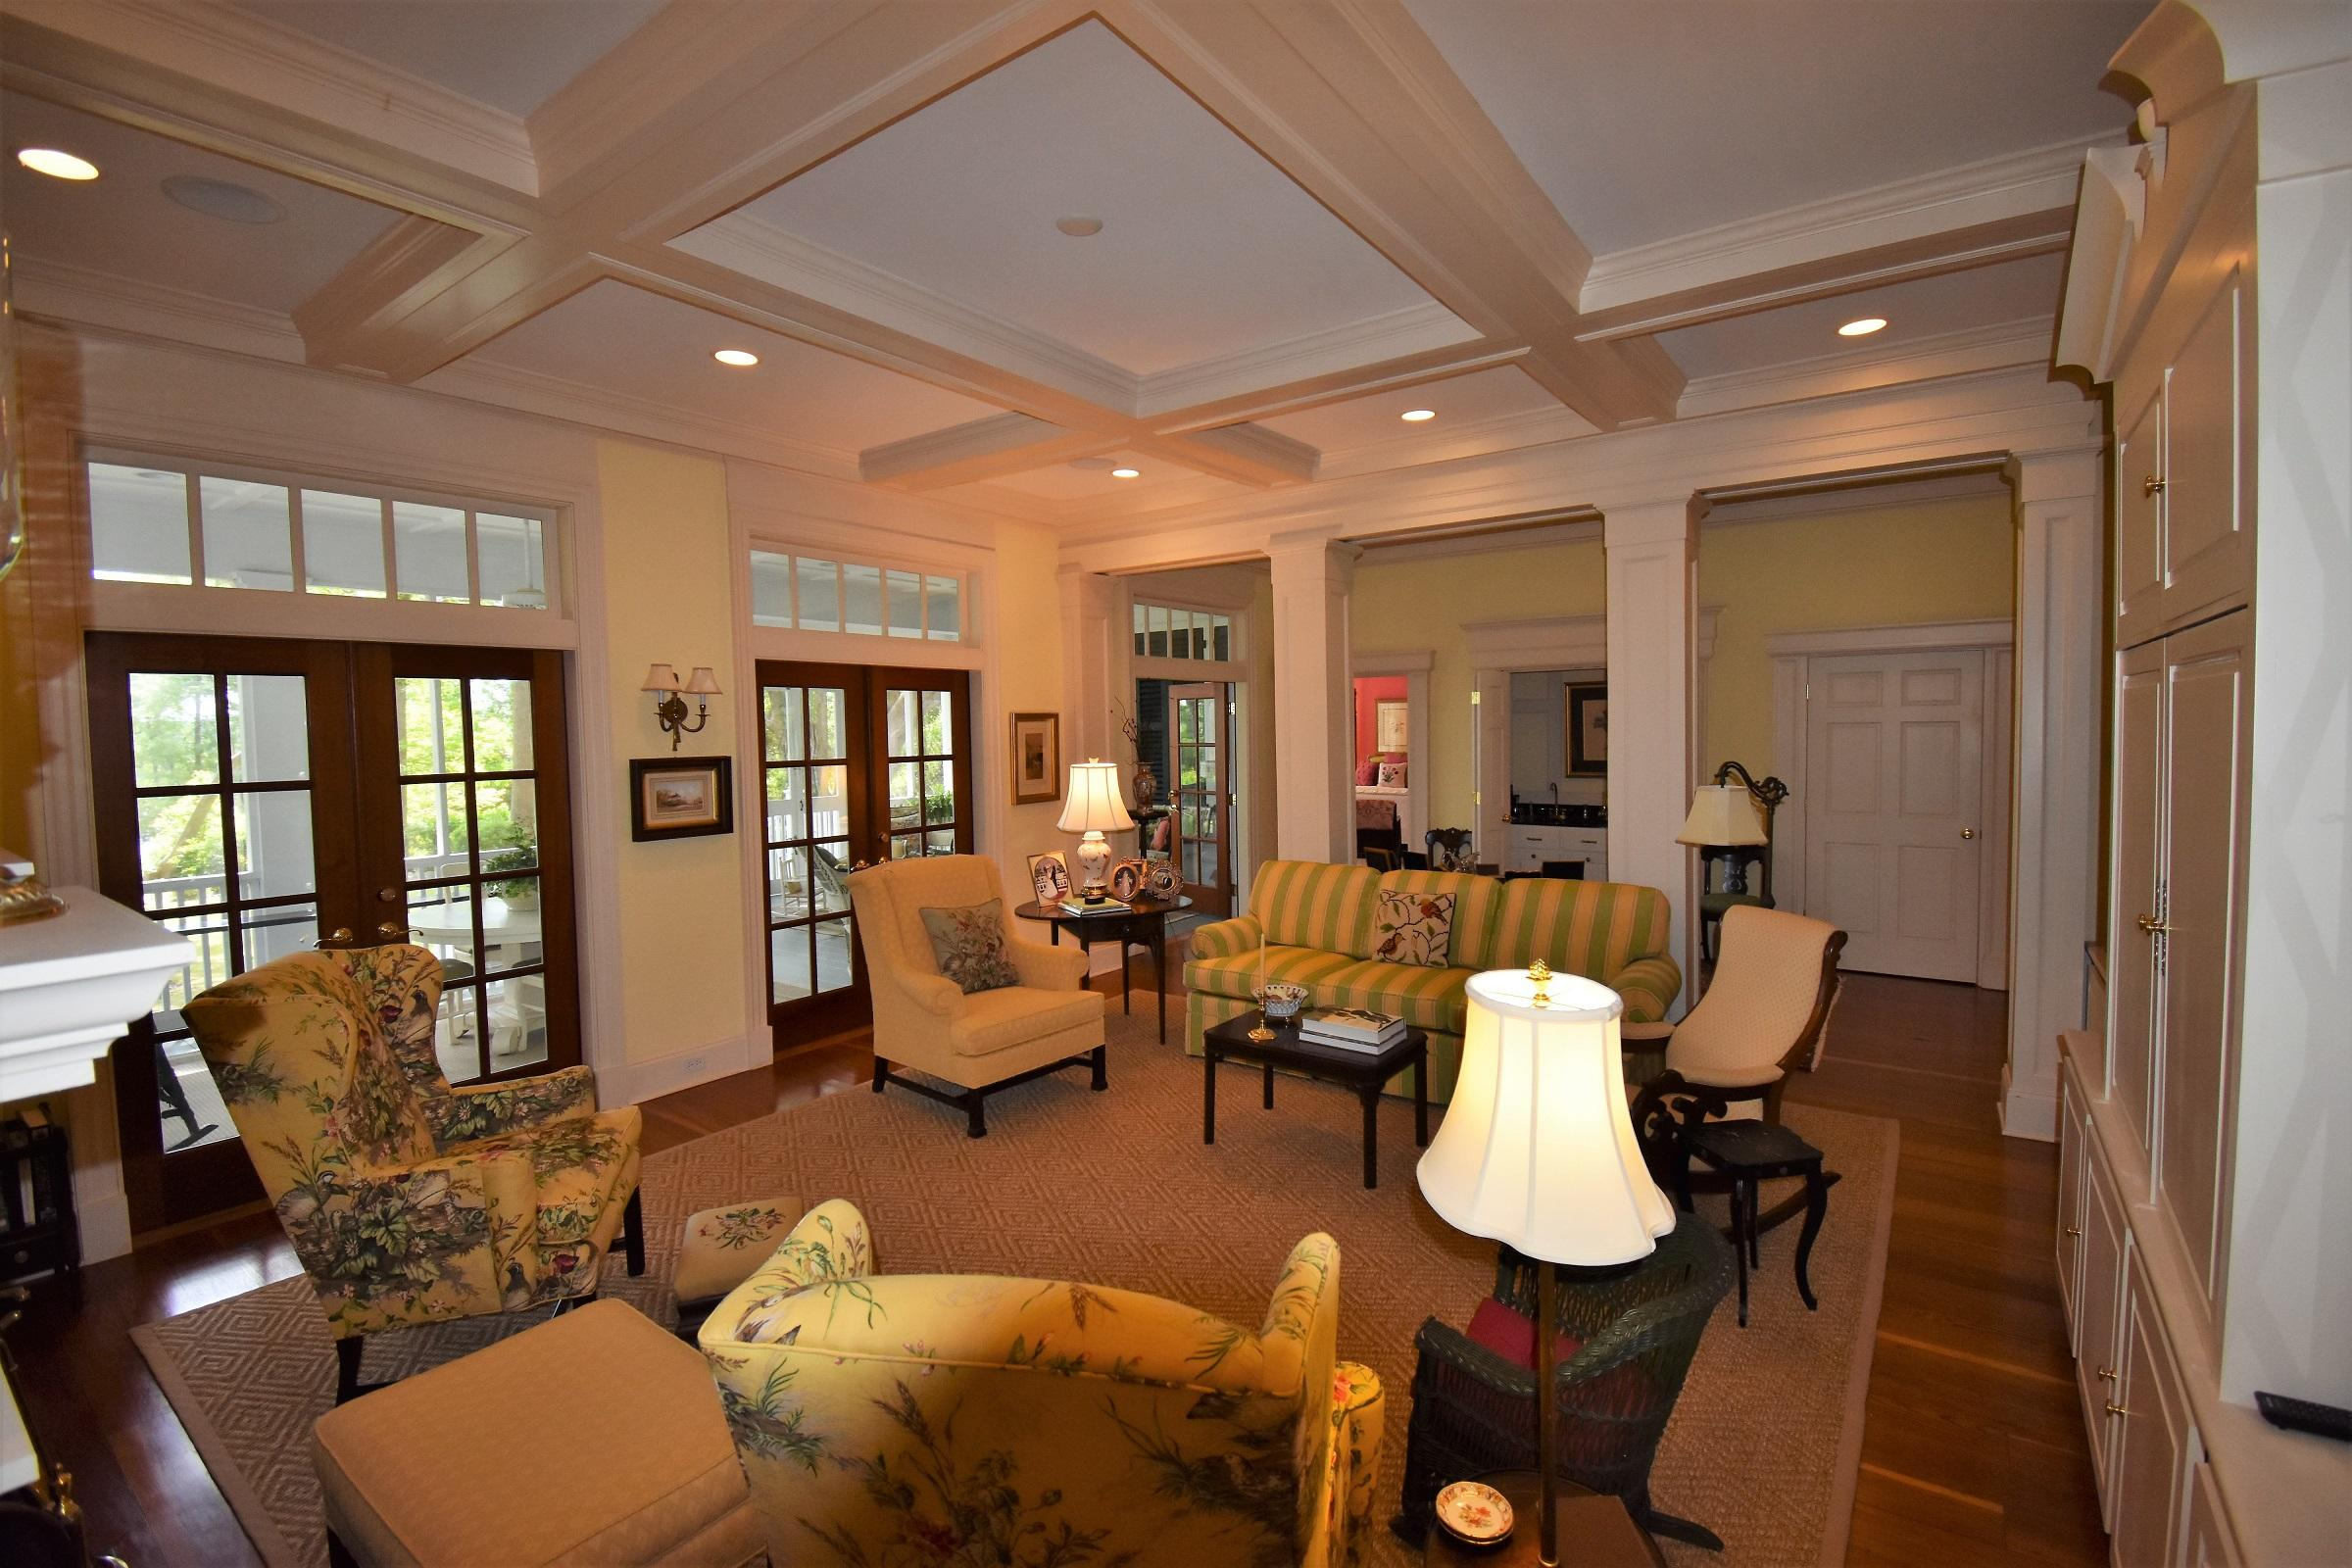 Bull Point Plantation Homes For Sale - 123 Bull Point, Seabrook, SC - 37